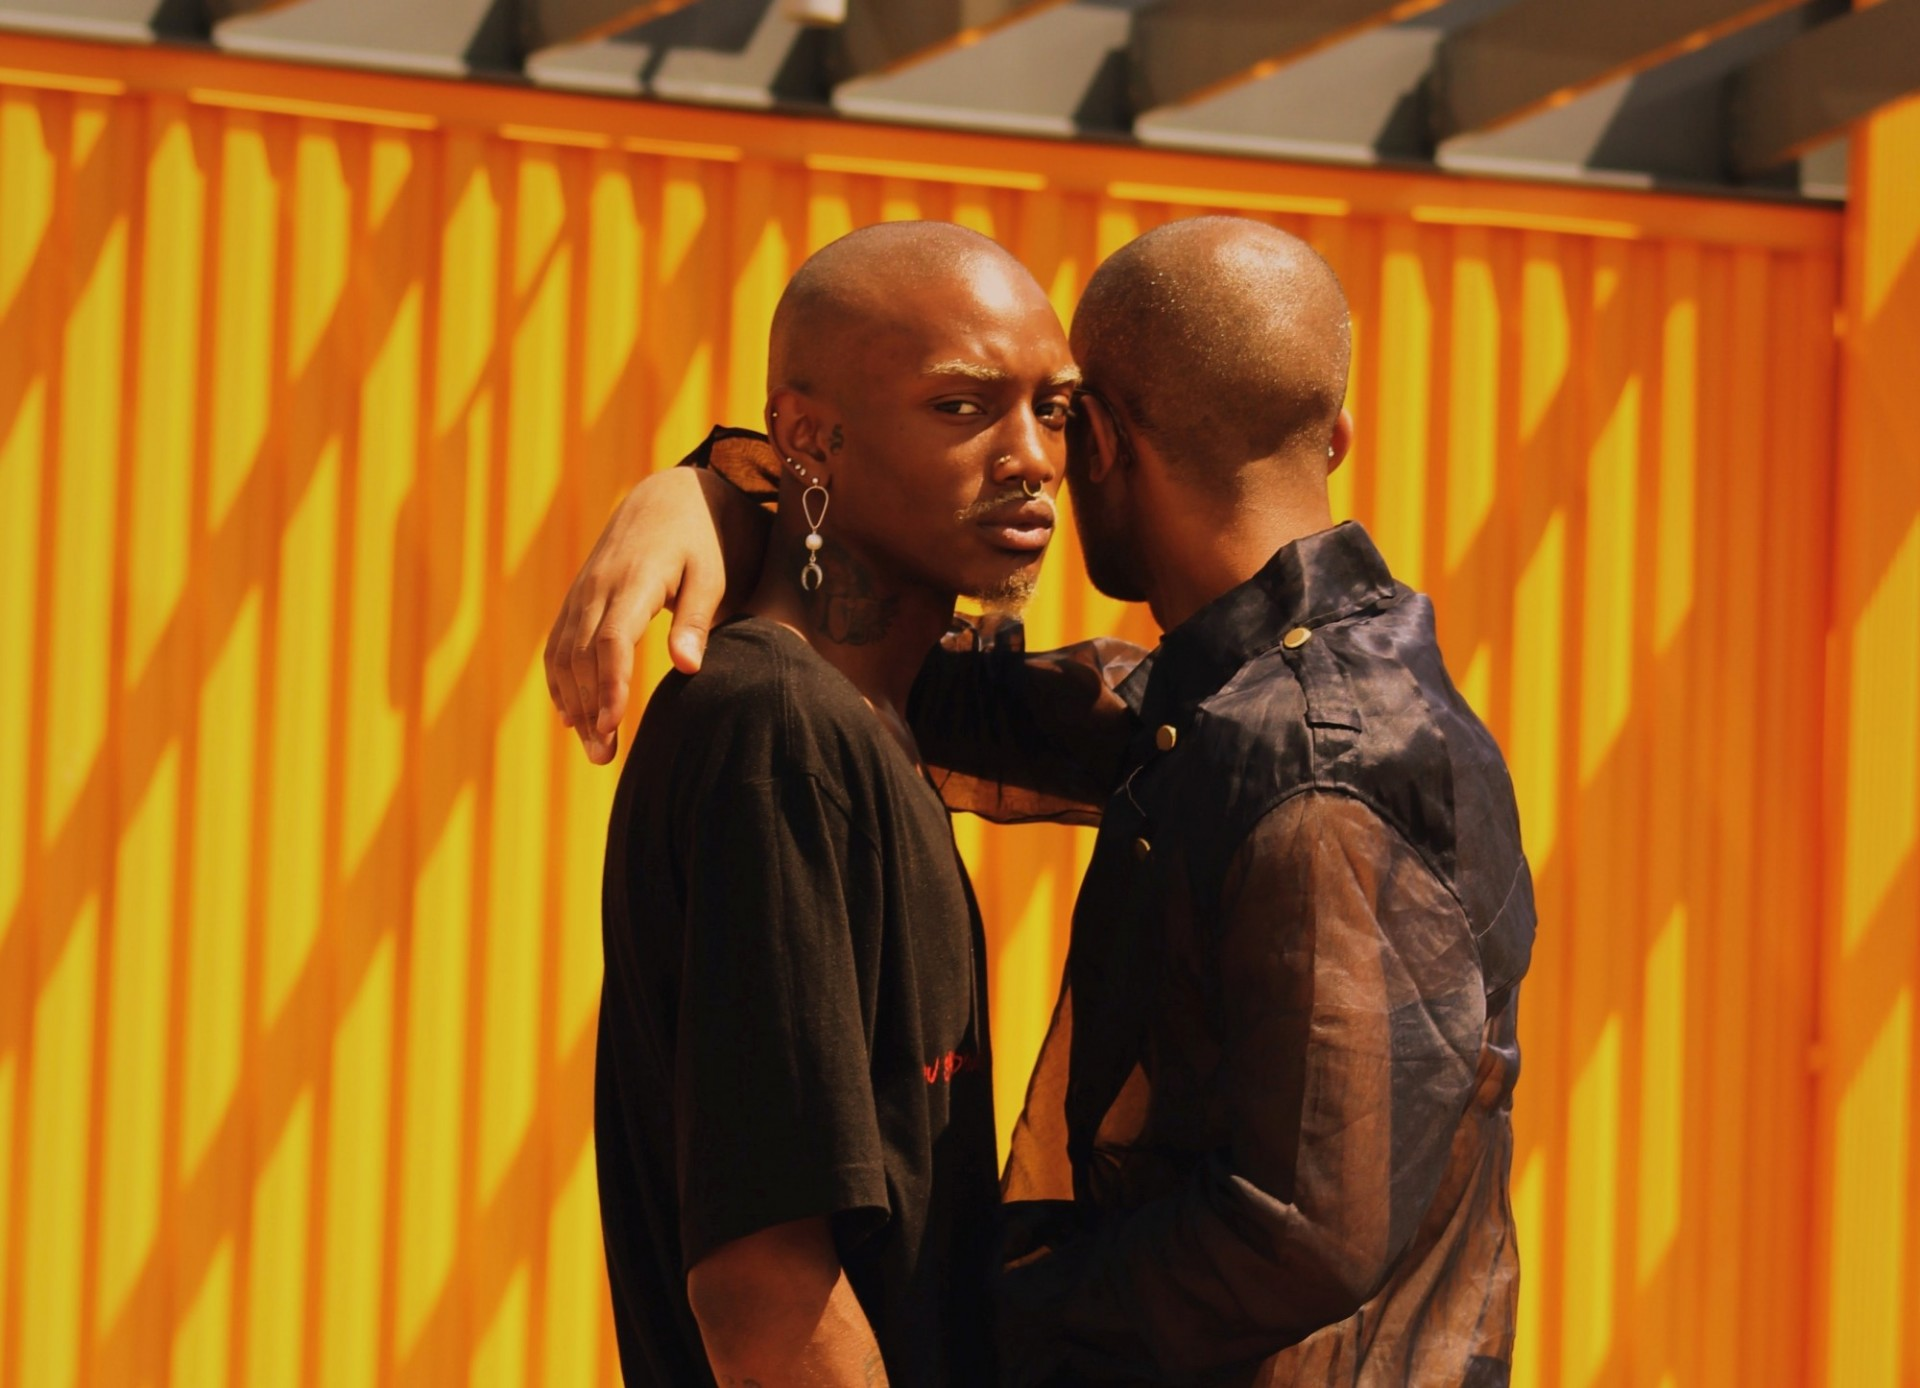 a couple (two Black men) standing and hugging